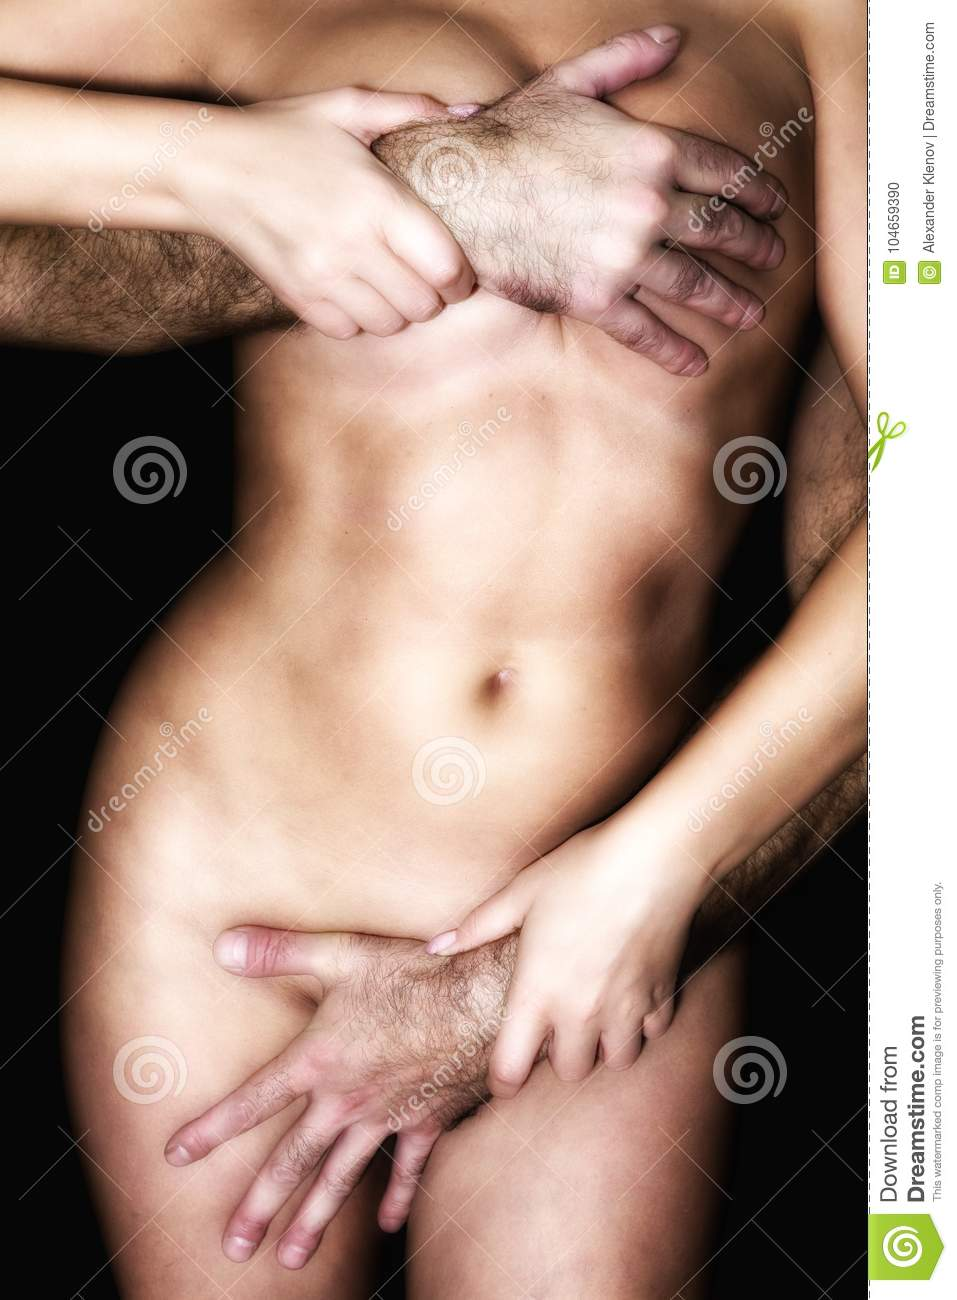 man-squeeze-naked-woman